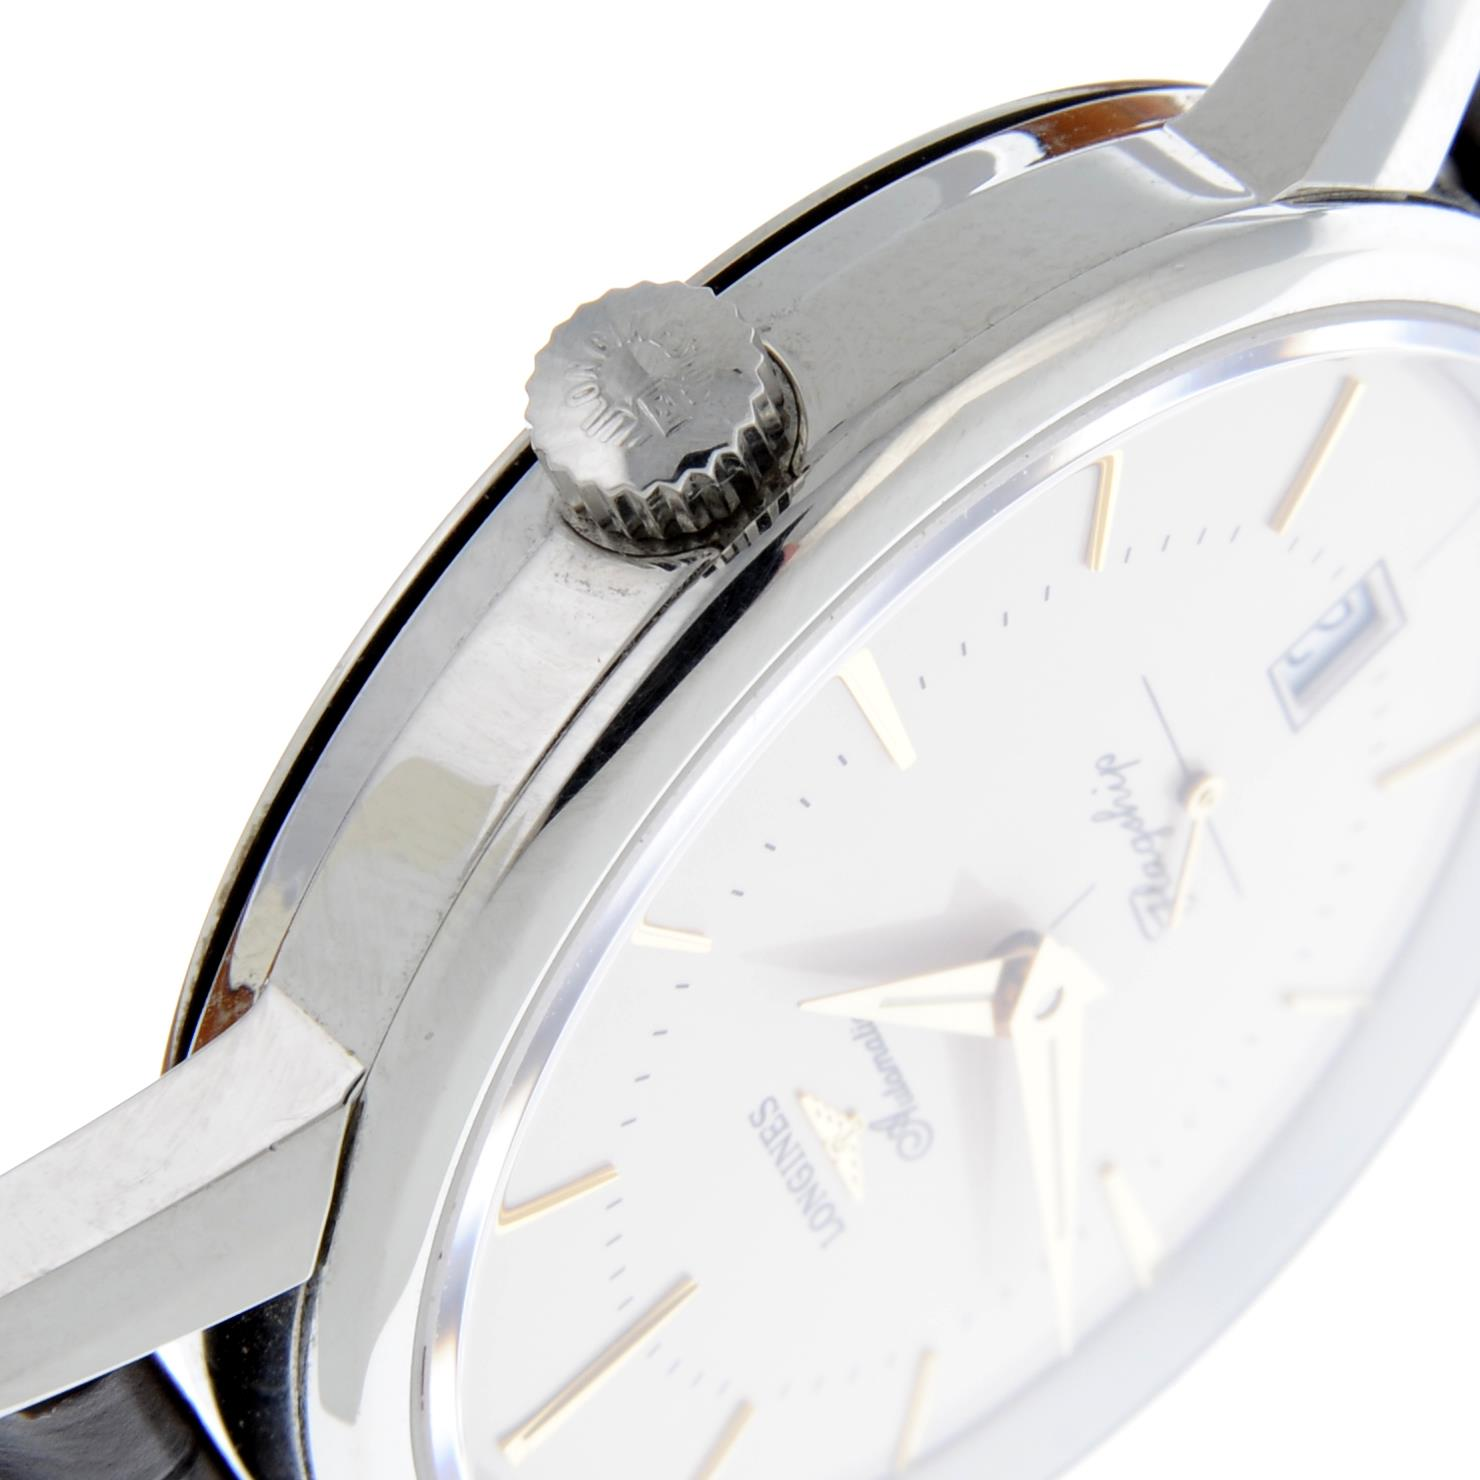 LONGINES - a Flagship wrist watch. - Image 5 of 6